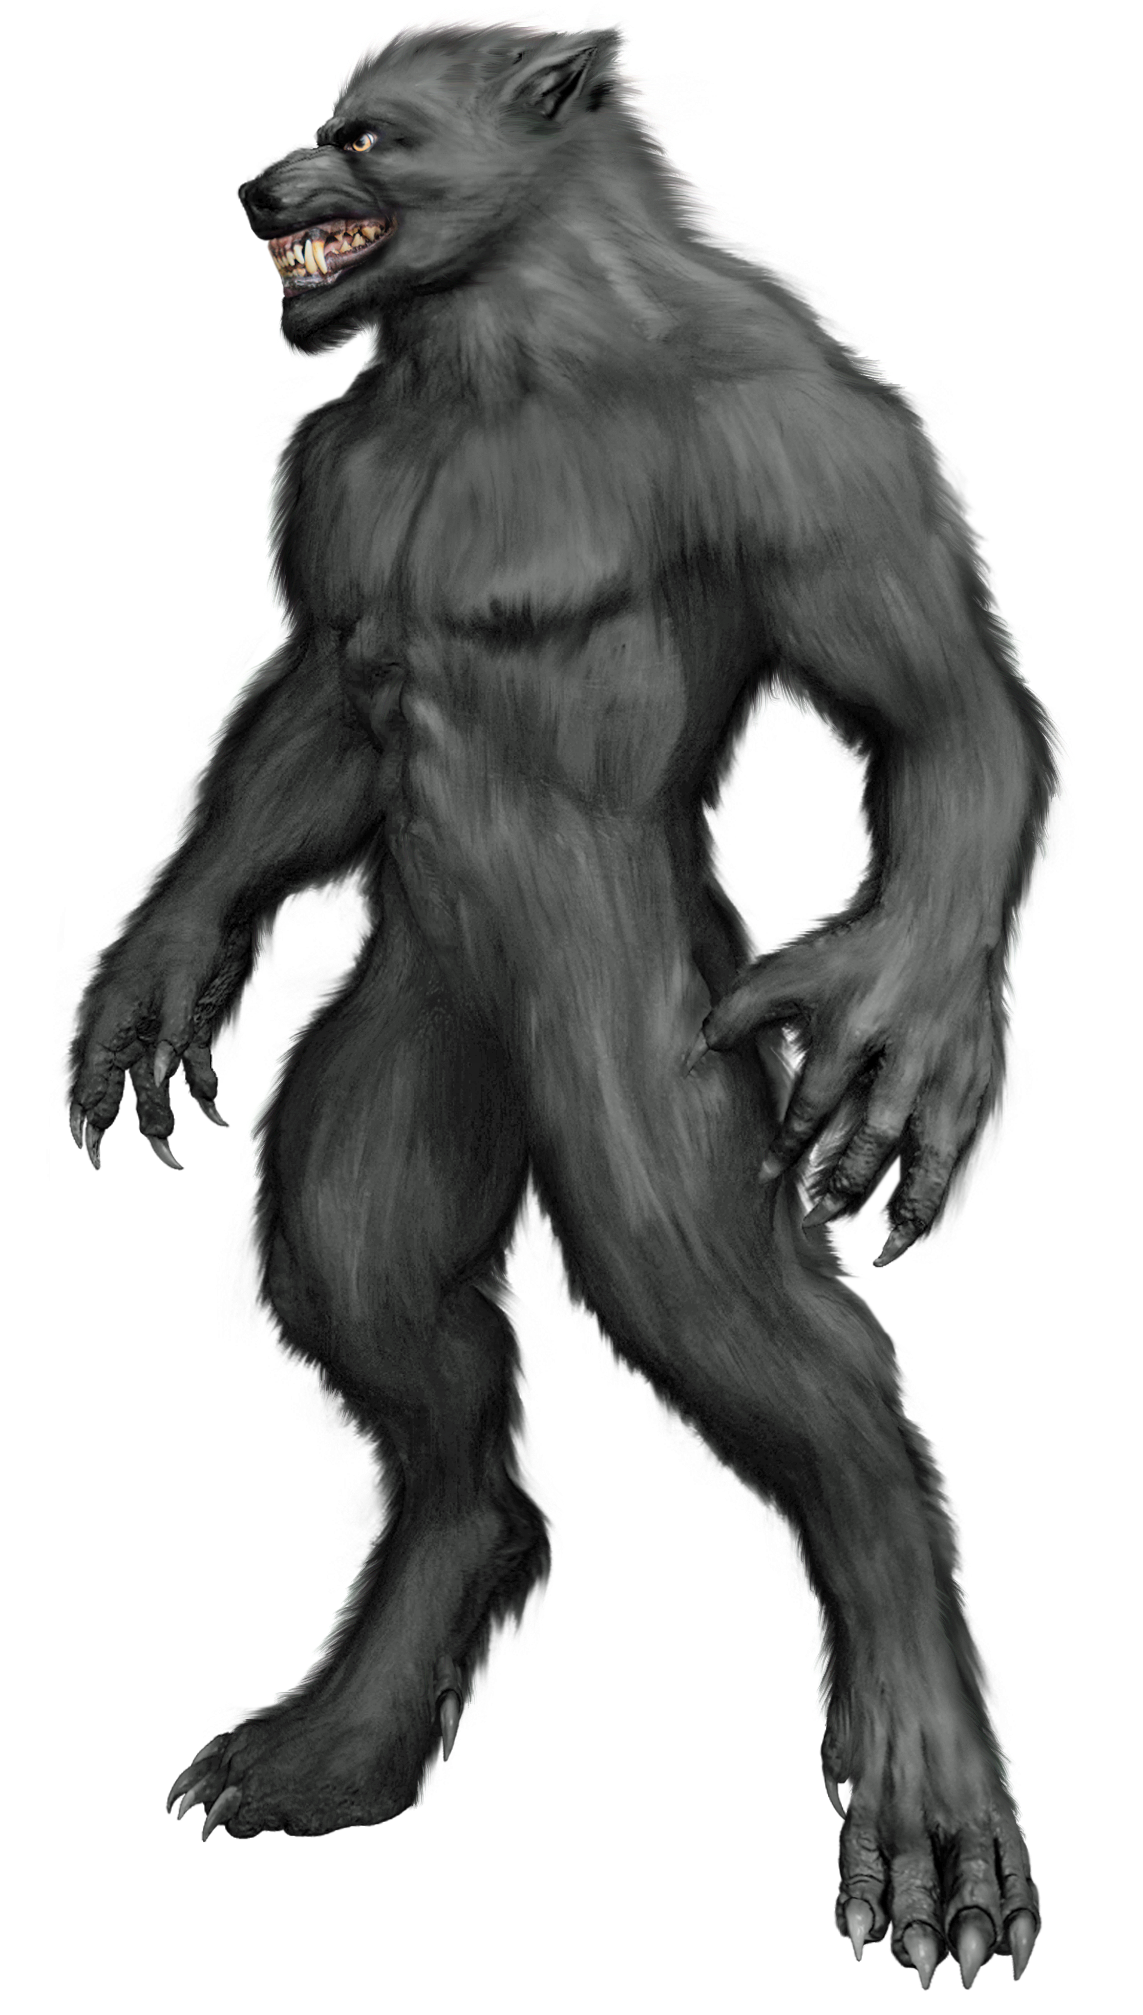 Transparent werewolf 3.5. From weretiger creatures